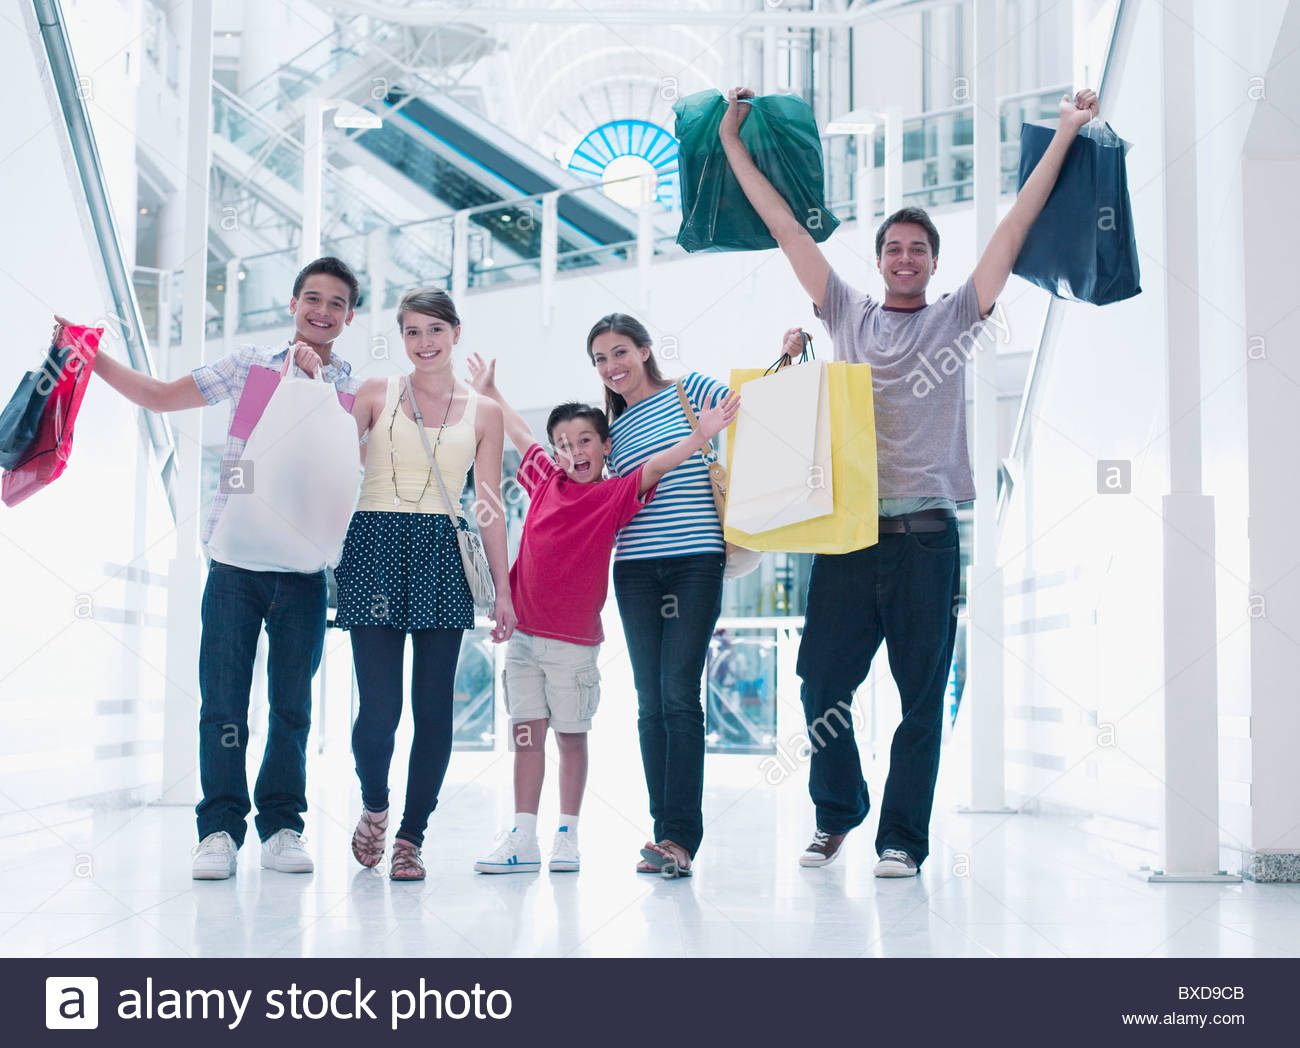 Happy family shopping together in mall - Stock Image